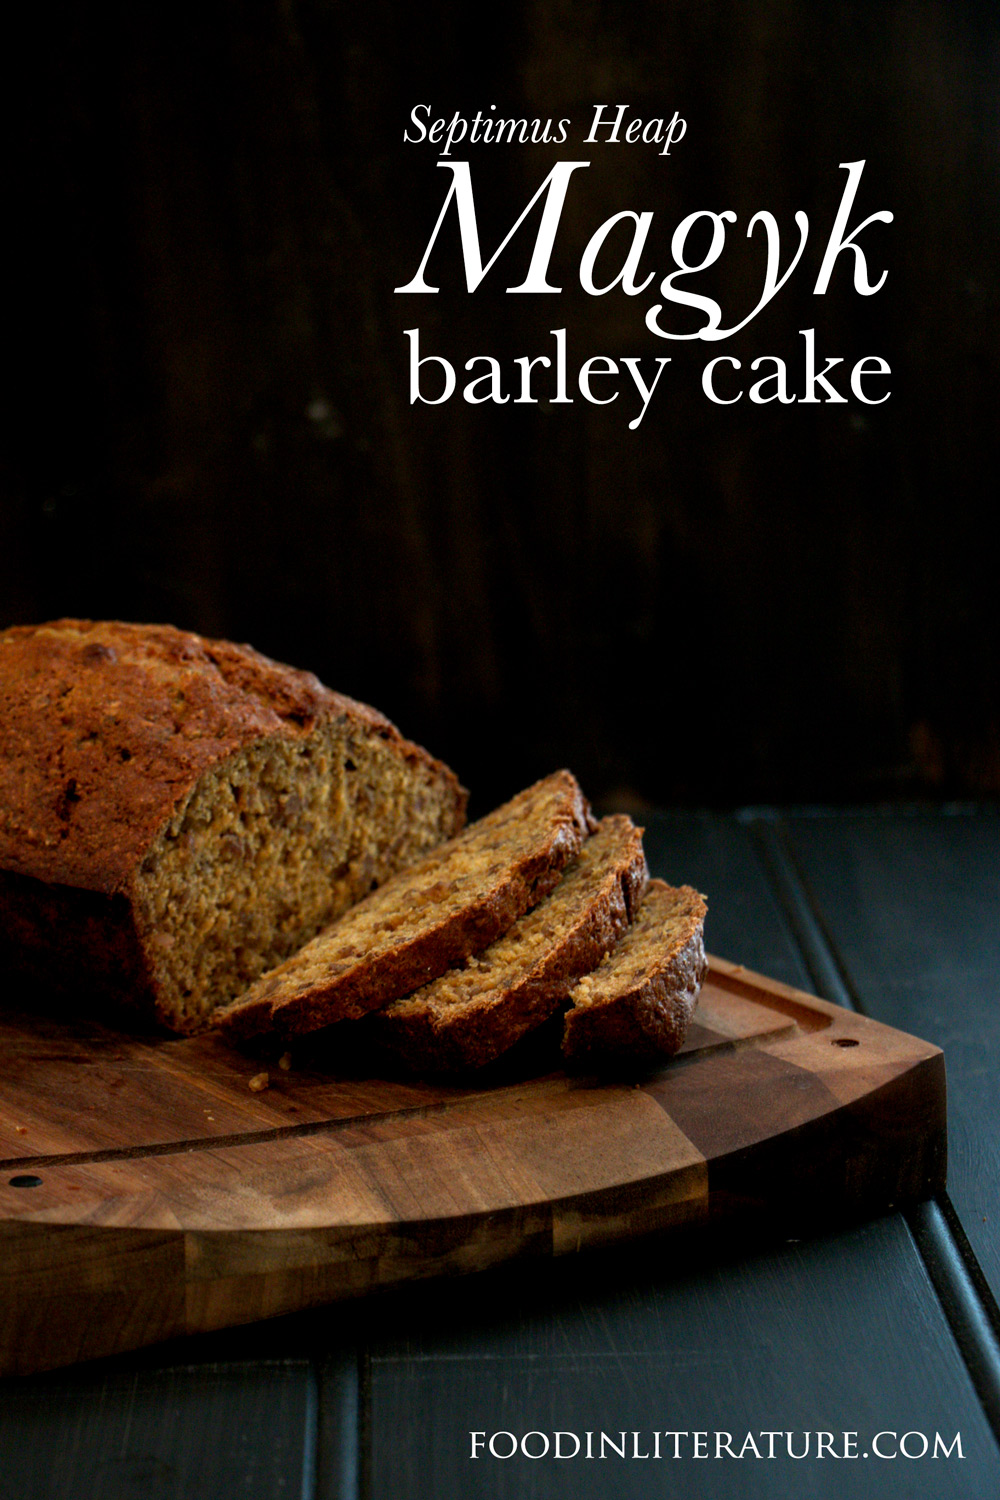 For fans of Septimus Heap, here's a barley cake recipe from Sally Mullin's cafe.